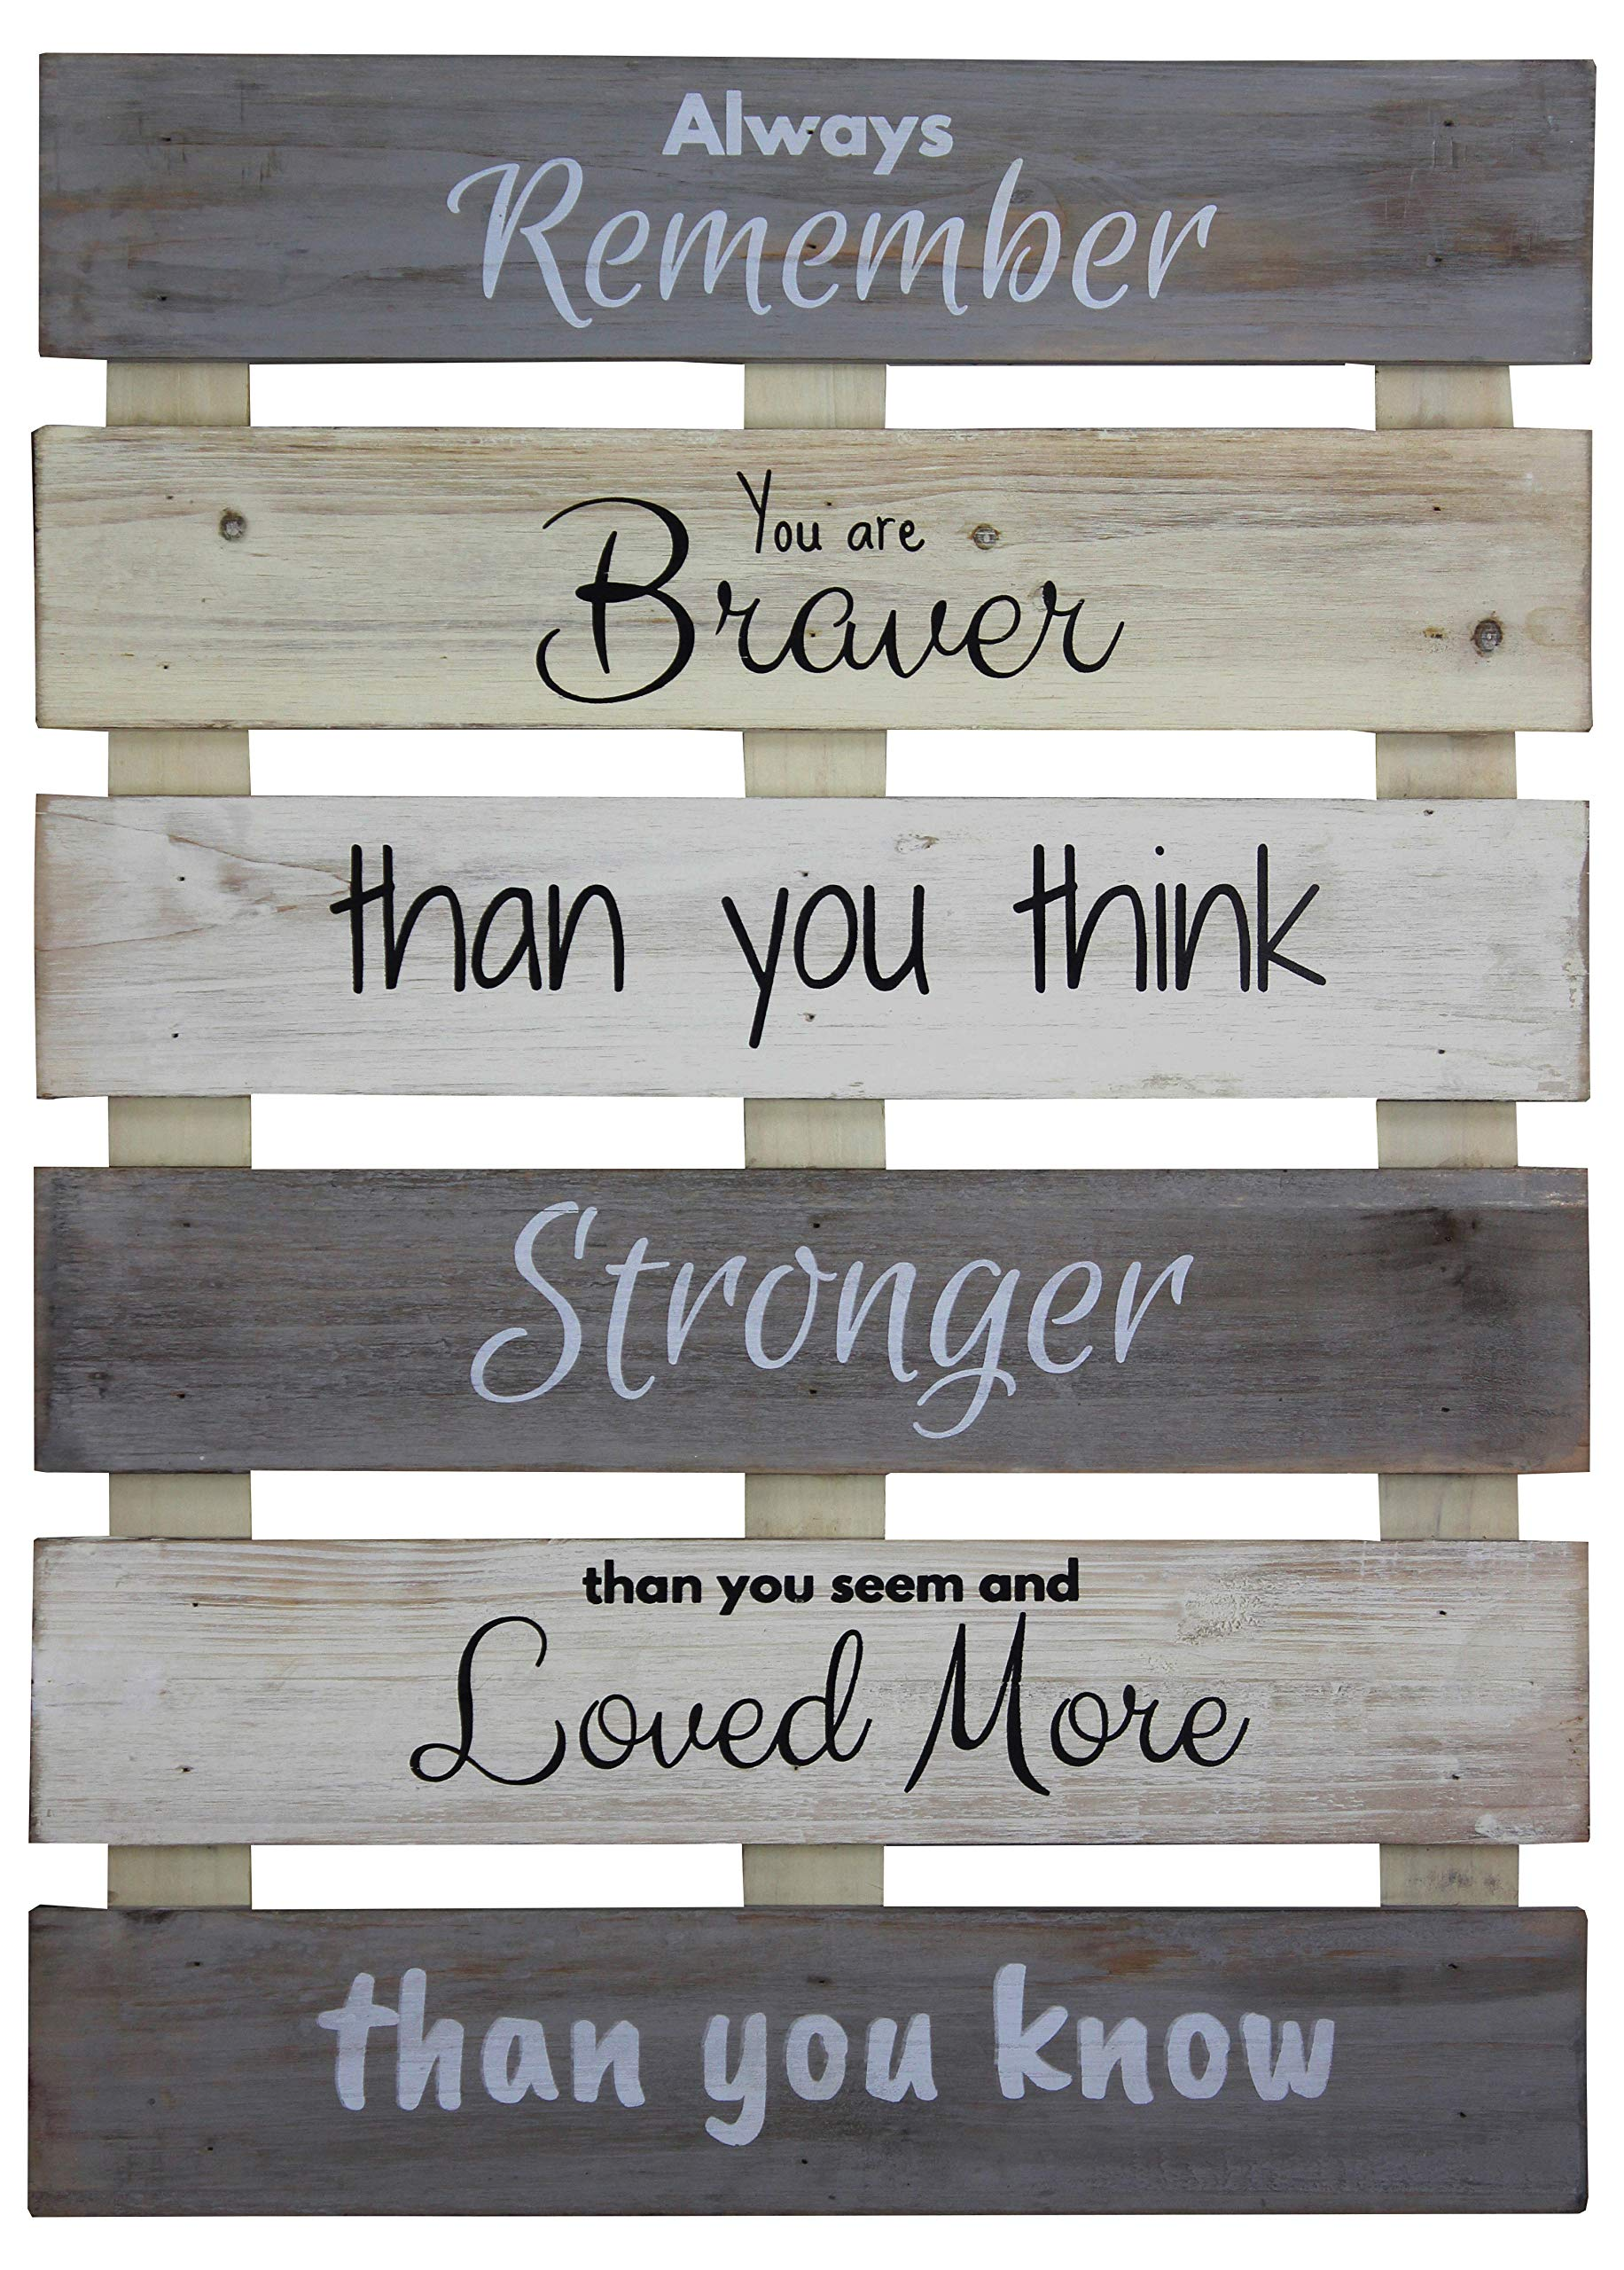 Vintage Rustic Farmhouse Wall Home Decor Sign For Kitchen Living Room Dining Room Bedroom Or Bathroom Always Remember Braver Stronger Loved Wood Pallet Skid Barnwood Color Decorative Wall Plaque Buy Online